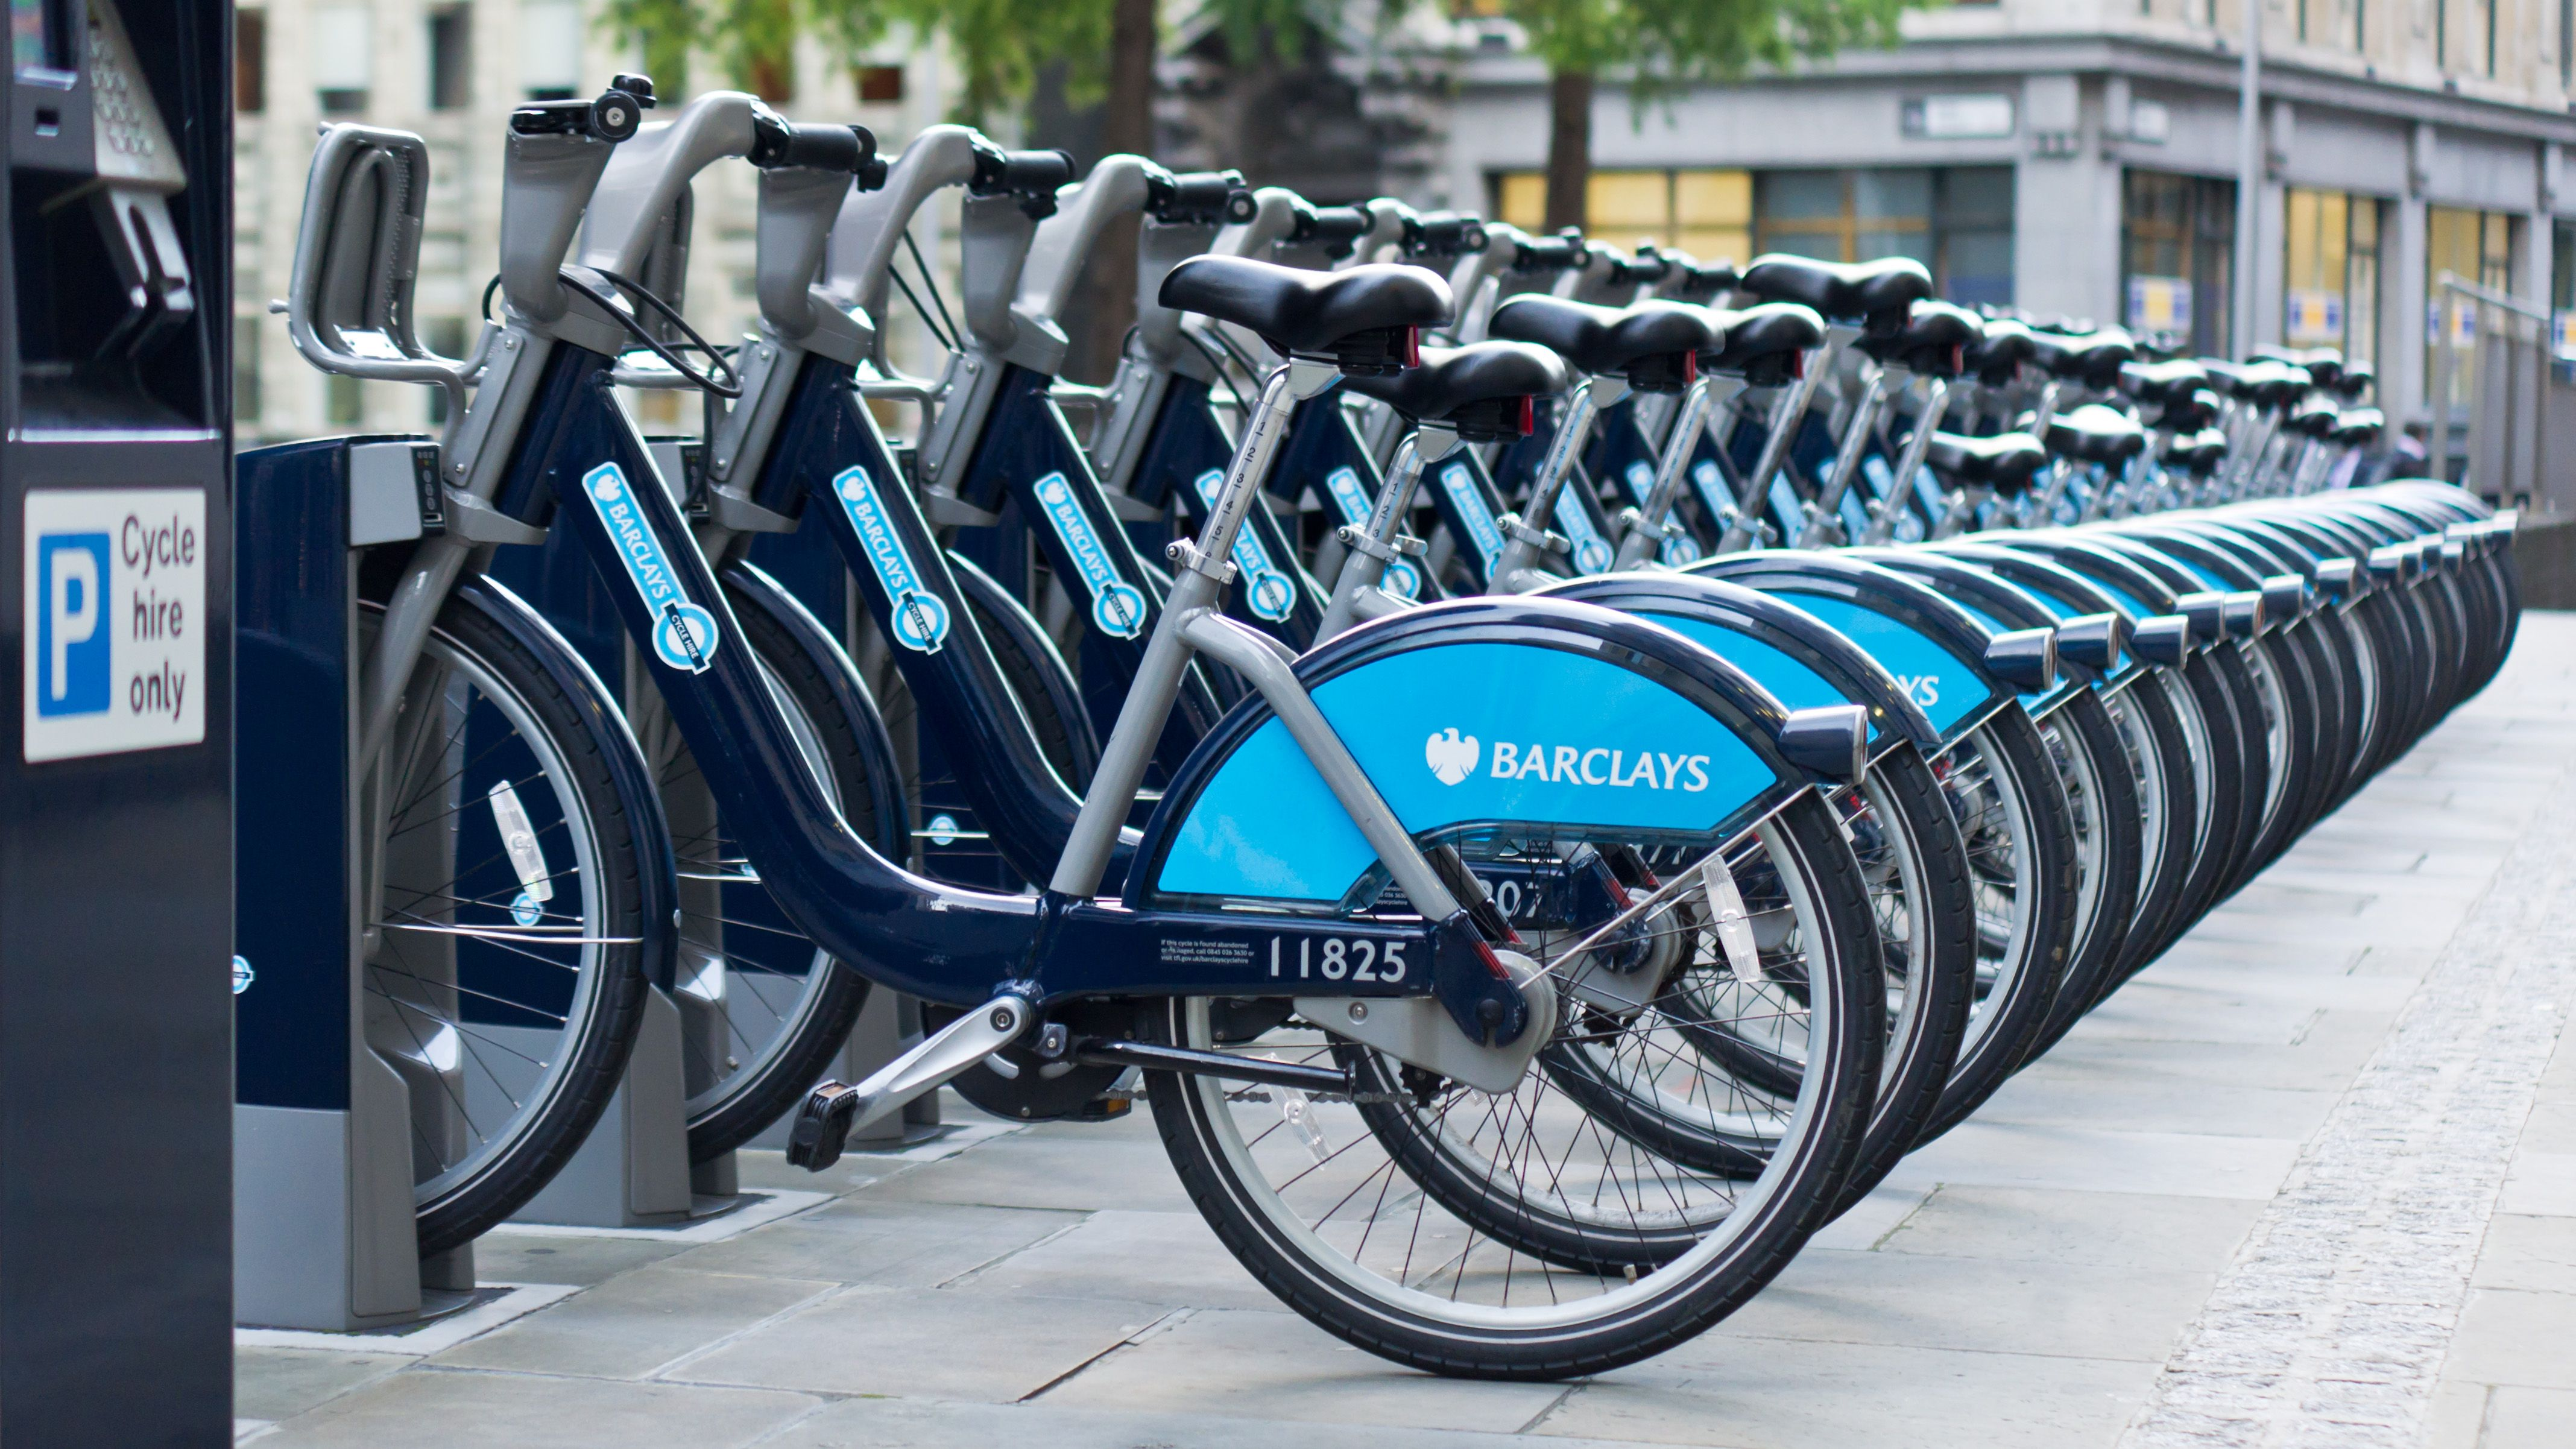 Barclays Cycle Hire Bike Rental Visit London Things To Do In